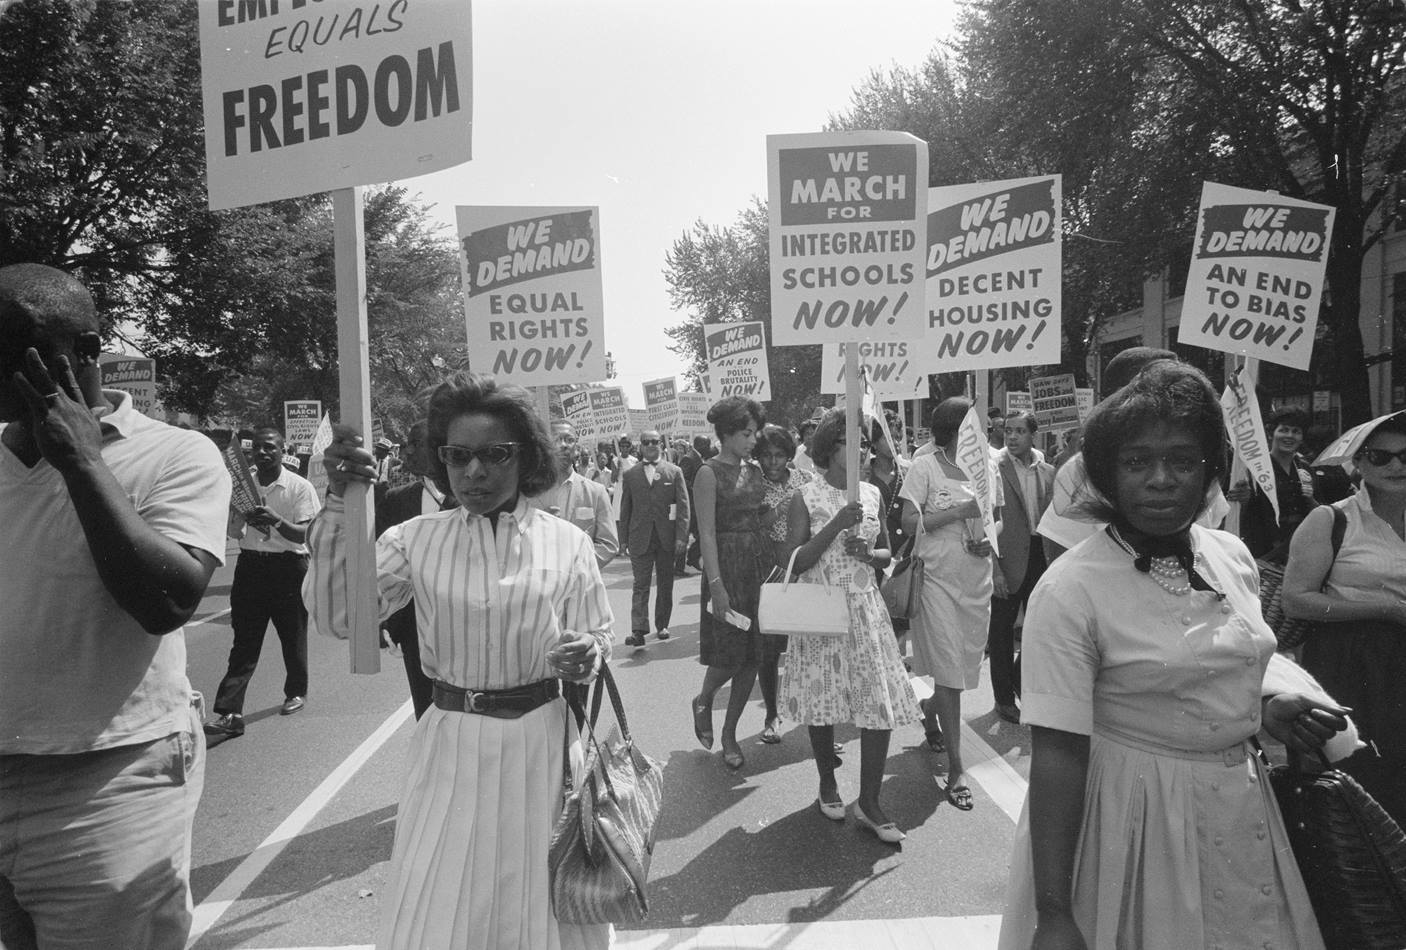 Procession of African Americans carry signs for equal rights, integrated schools, decent housing, and an end to bias at the March on Washington for Jobs and Freedom on August 28, 1963. Photo by Warren K. Leffler, property of Library of Congress